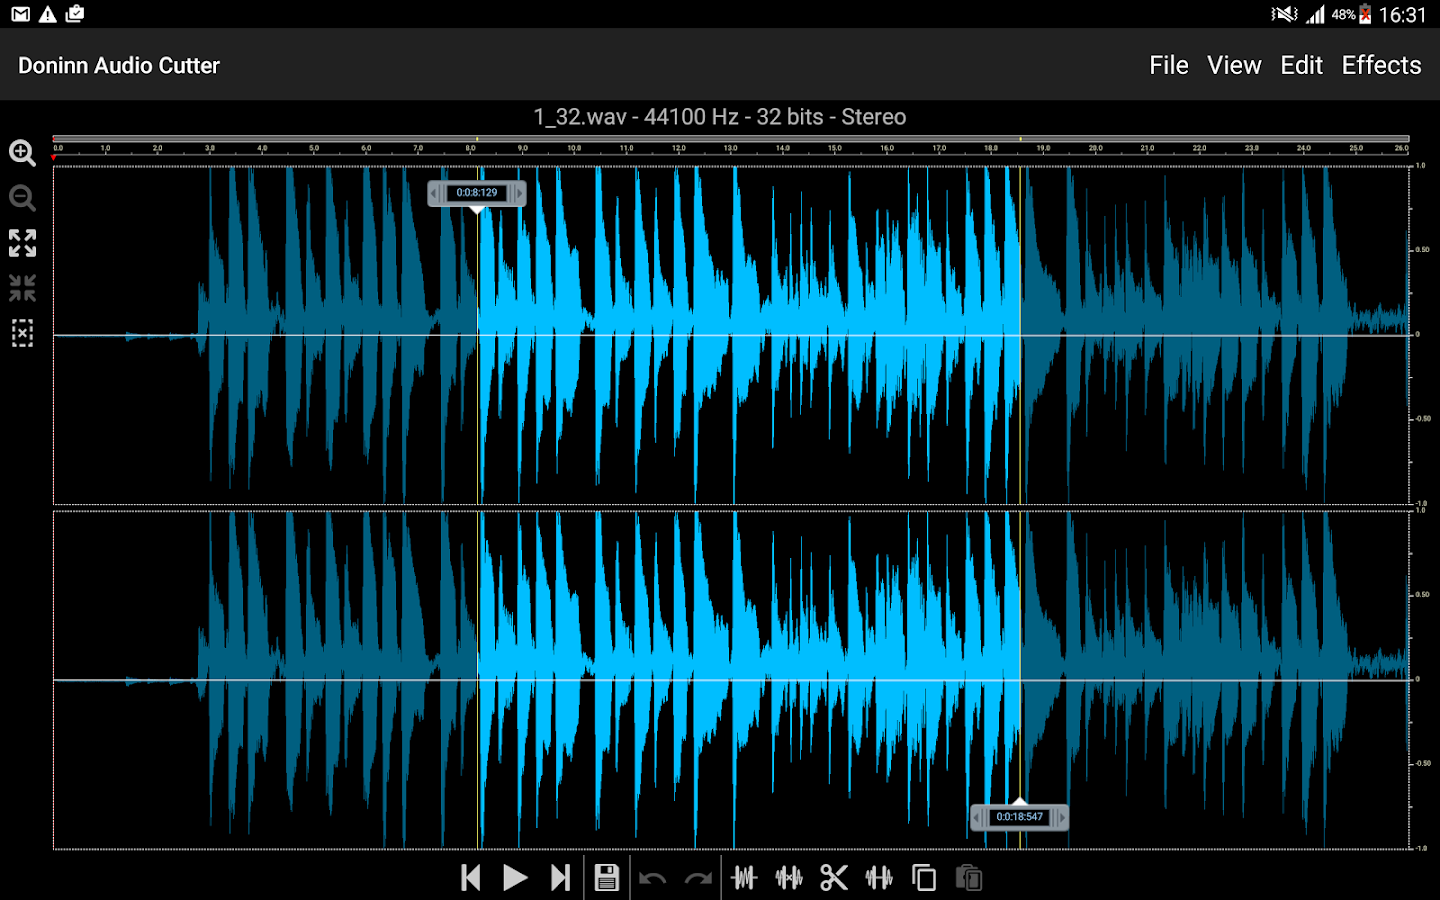 Doninn Audio Cutter Screenshot 6